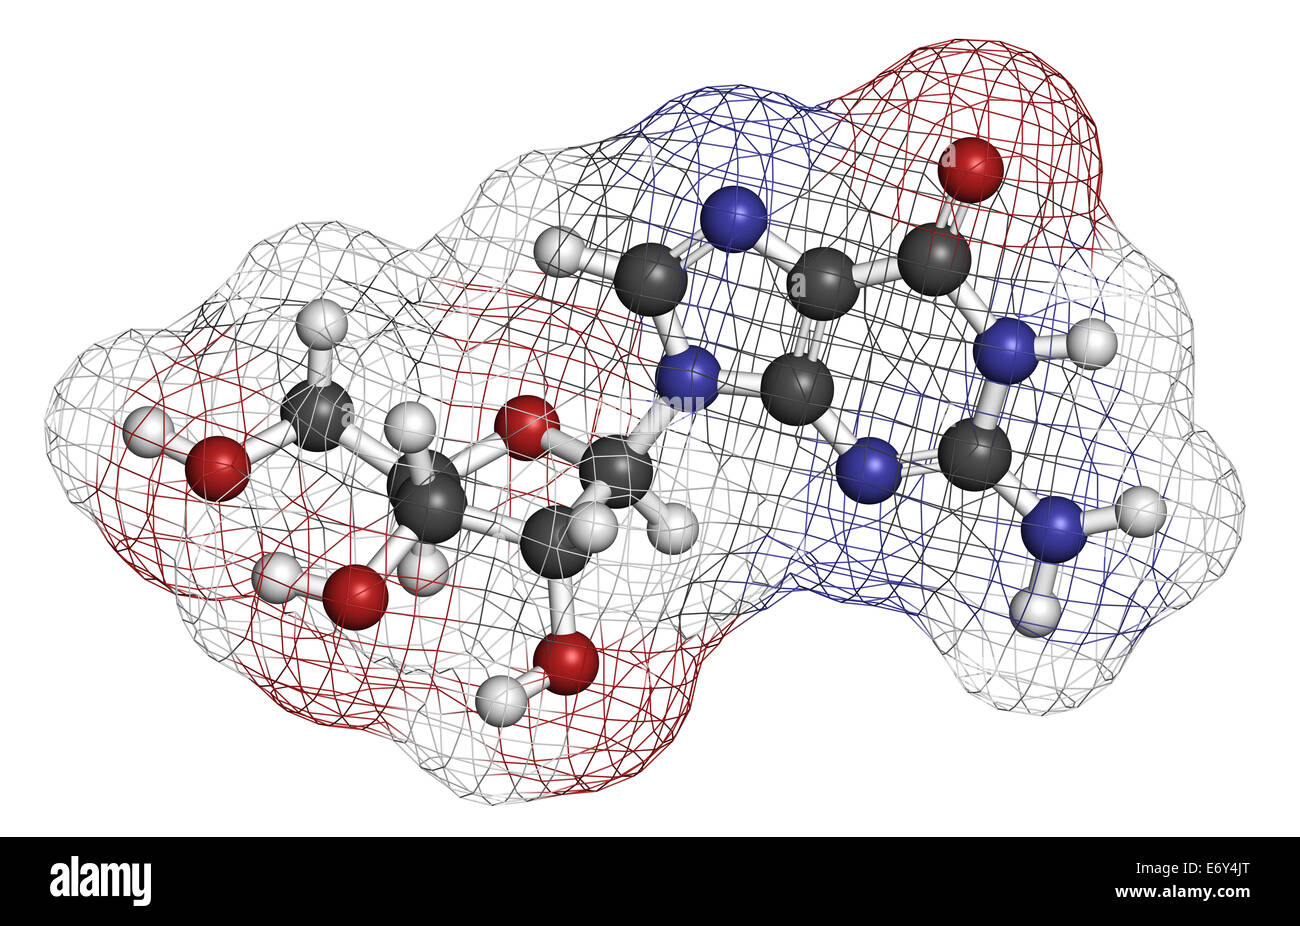 Guanosine purine nucleoside molecule. Important component of GTP, GDP, cGMP, GMP and RNA. Atoms are represented - Stock Image